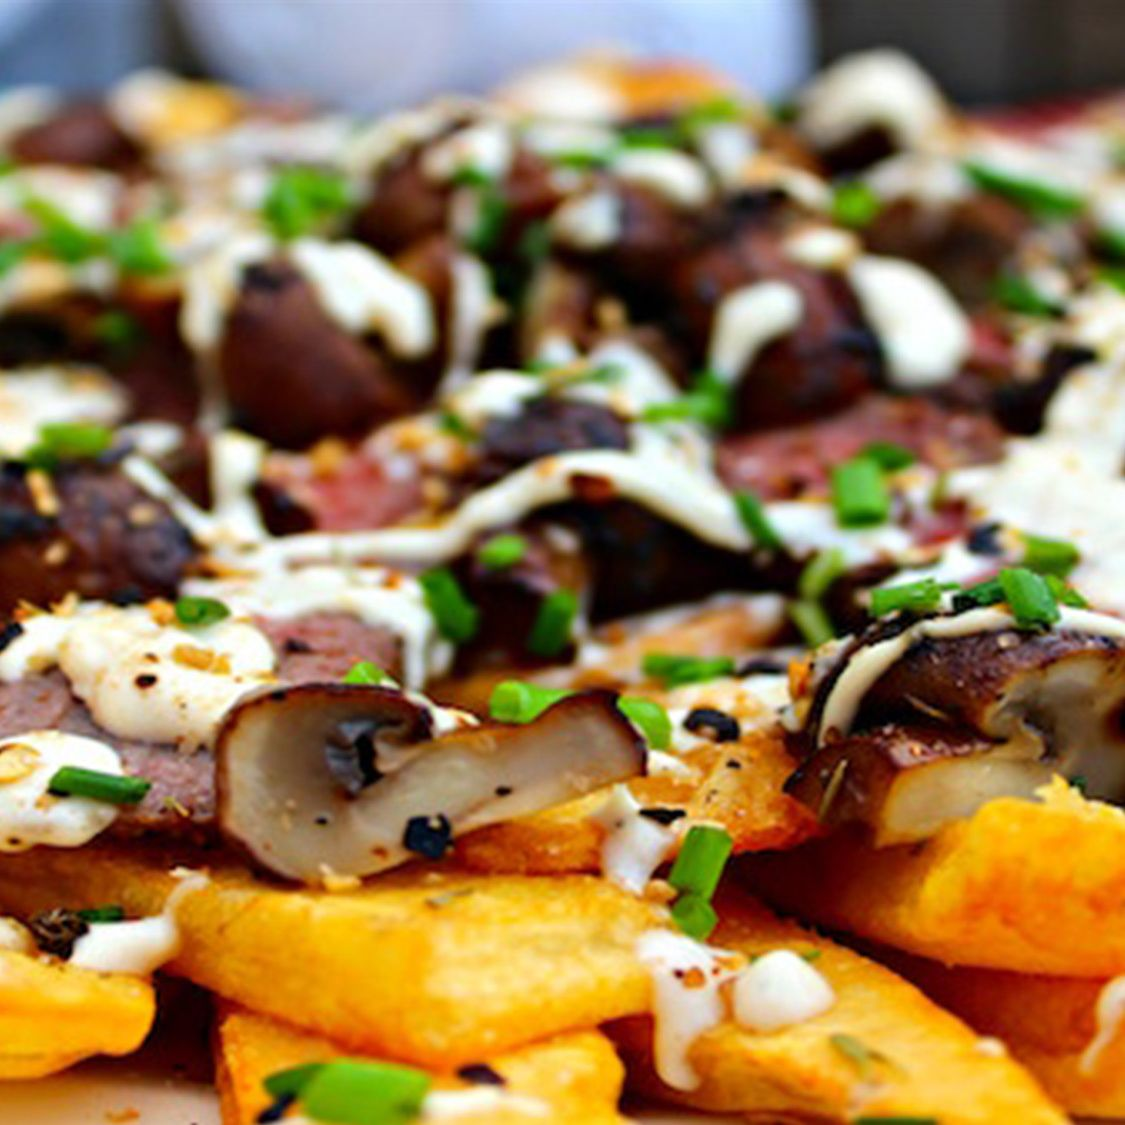 london_broil_loaded_fries_with_mushrooms_and_blue_cheese_sauce.jpg